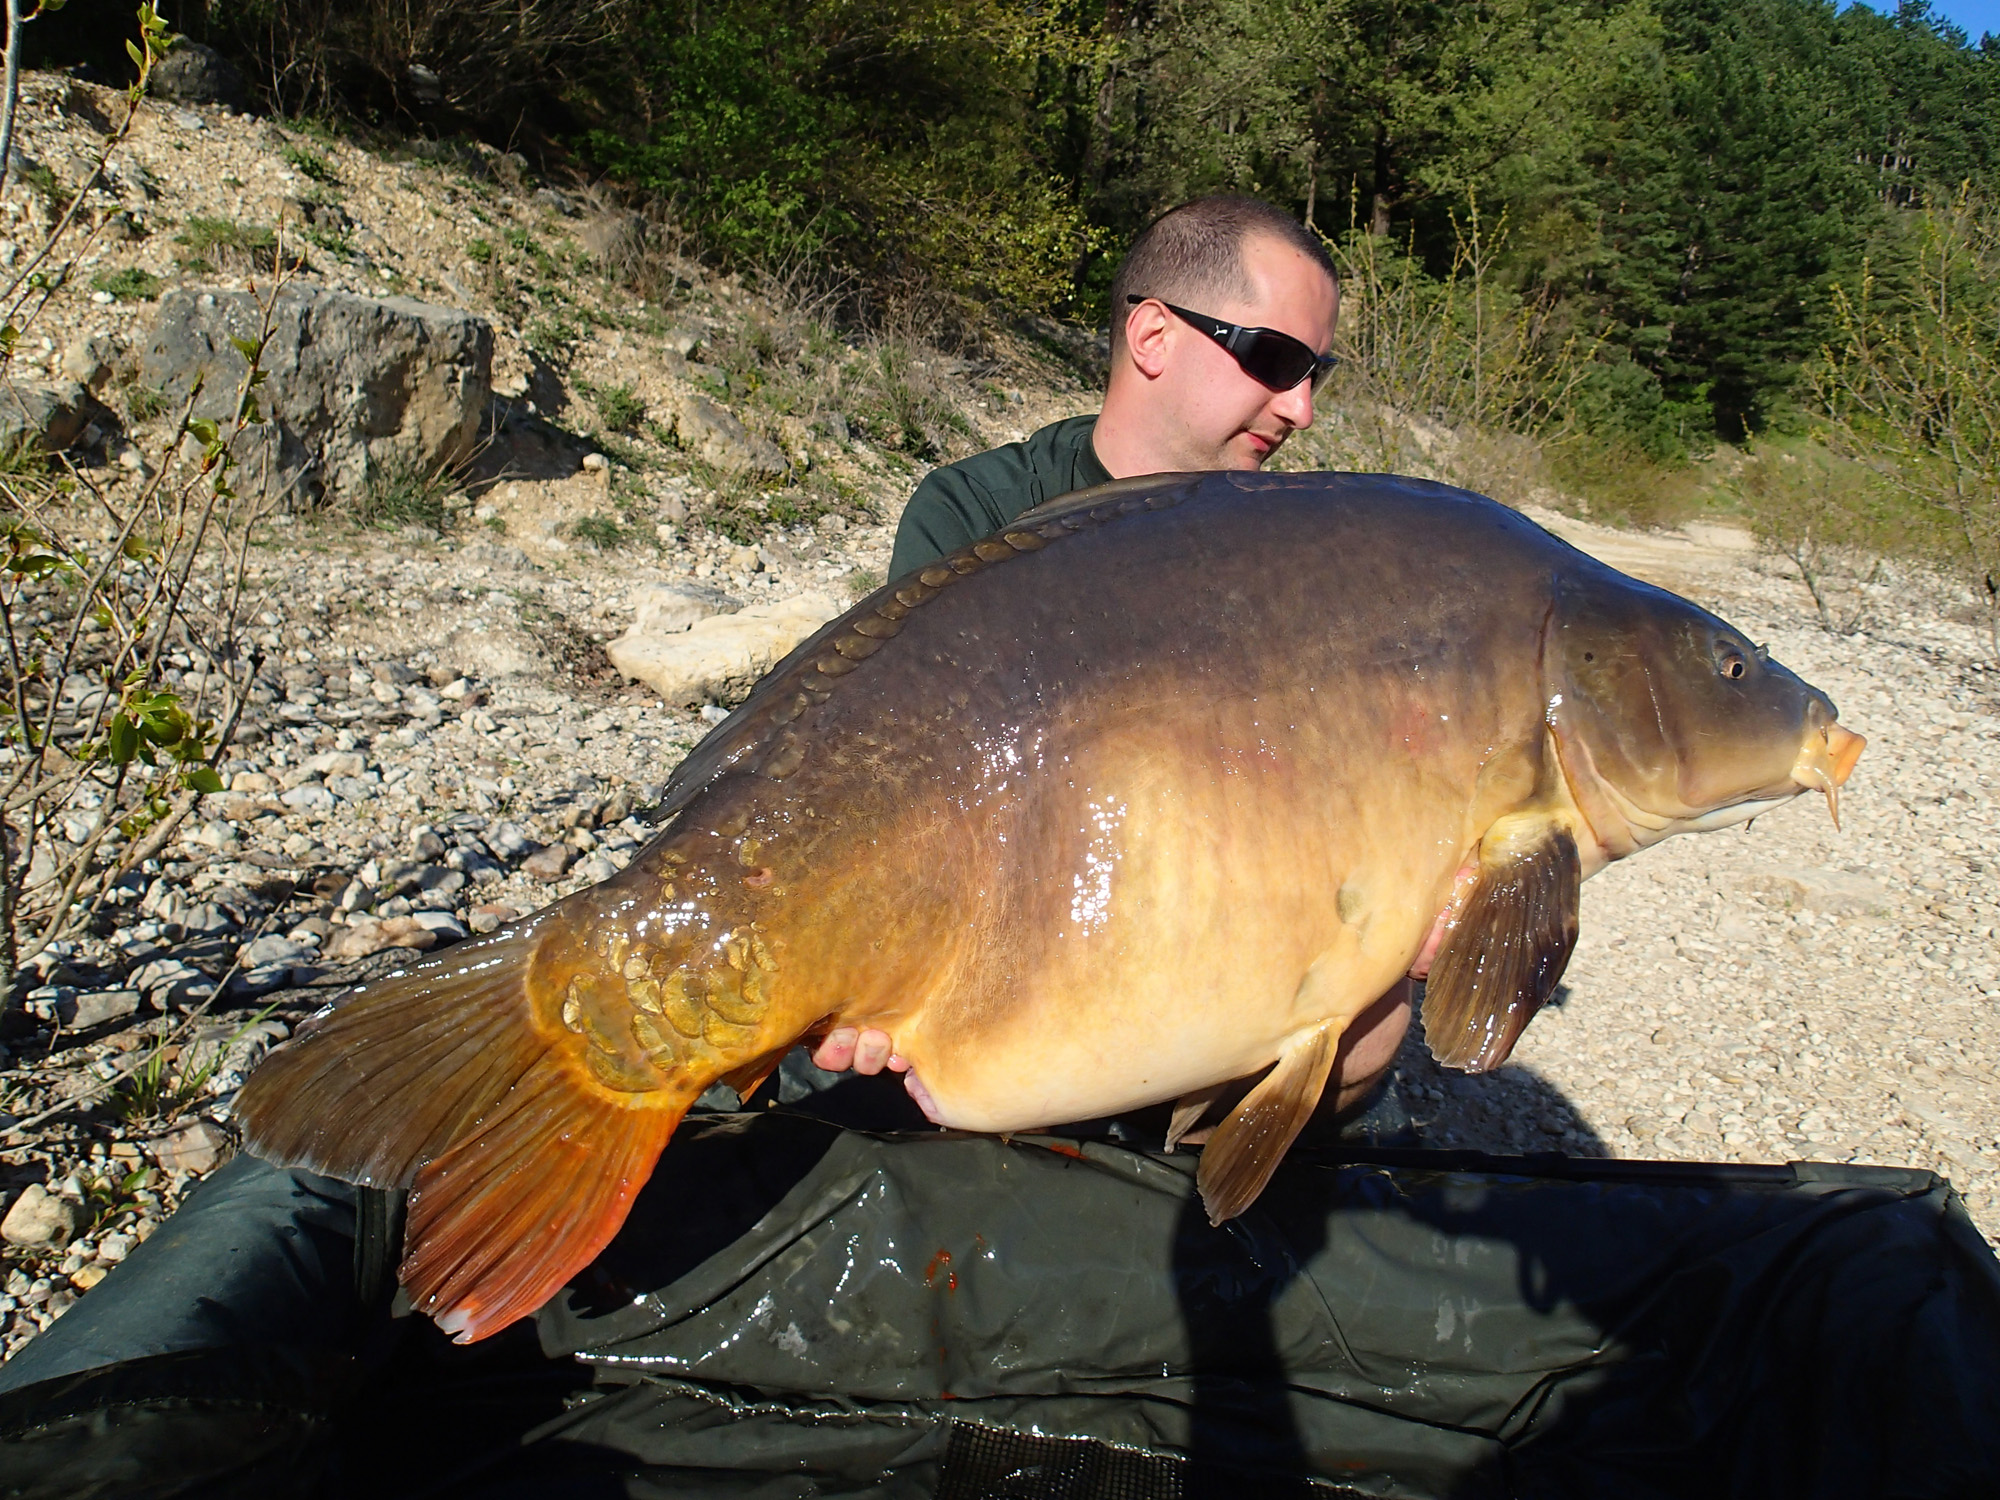 http://starbaits.com/fichiers/images/team/gallery/COLLET_Jerome/9 Jérôme Collet.JPG